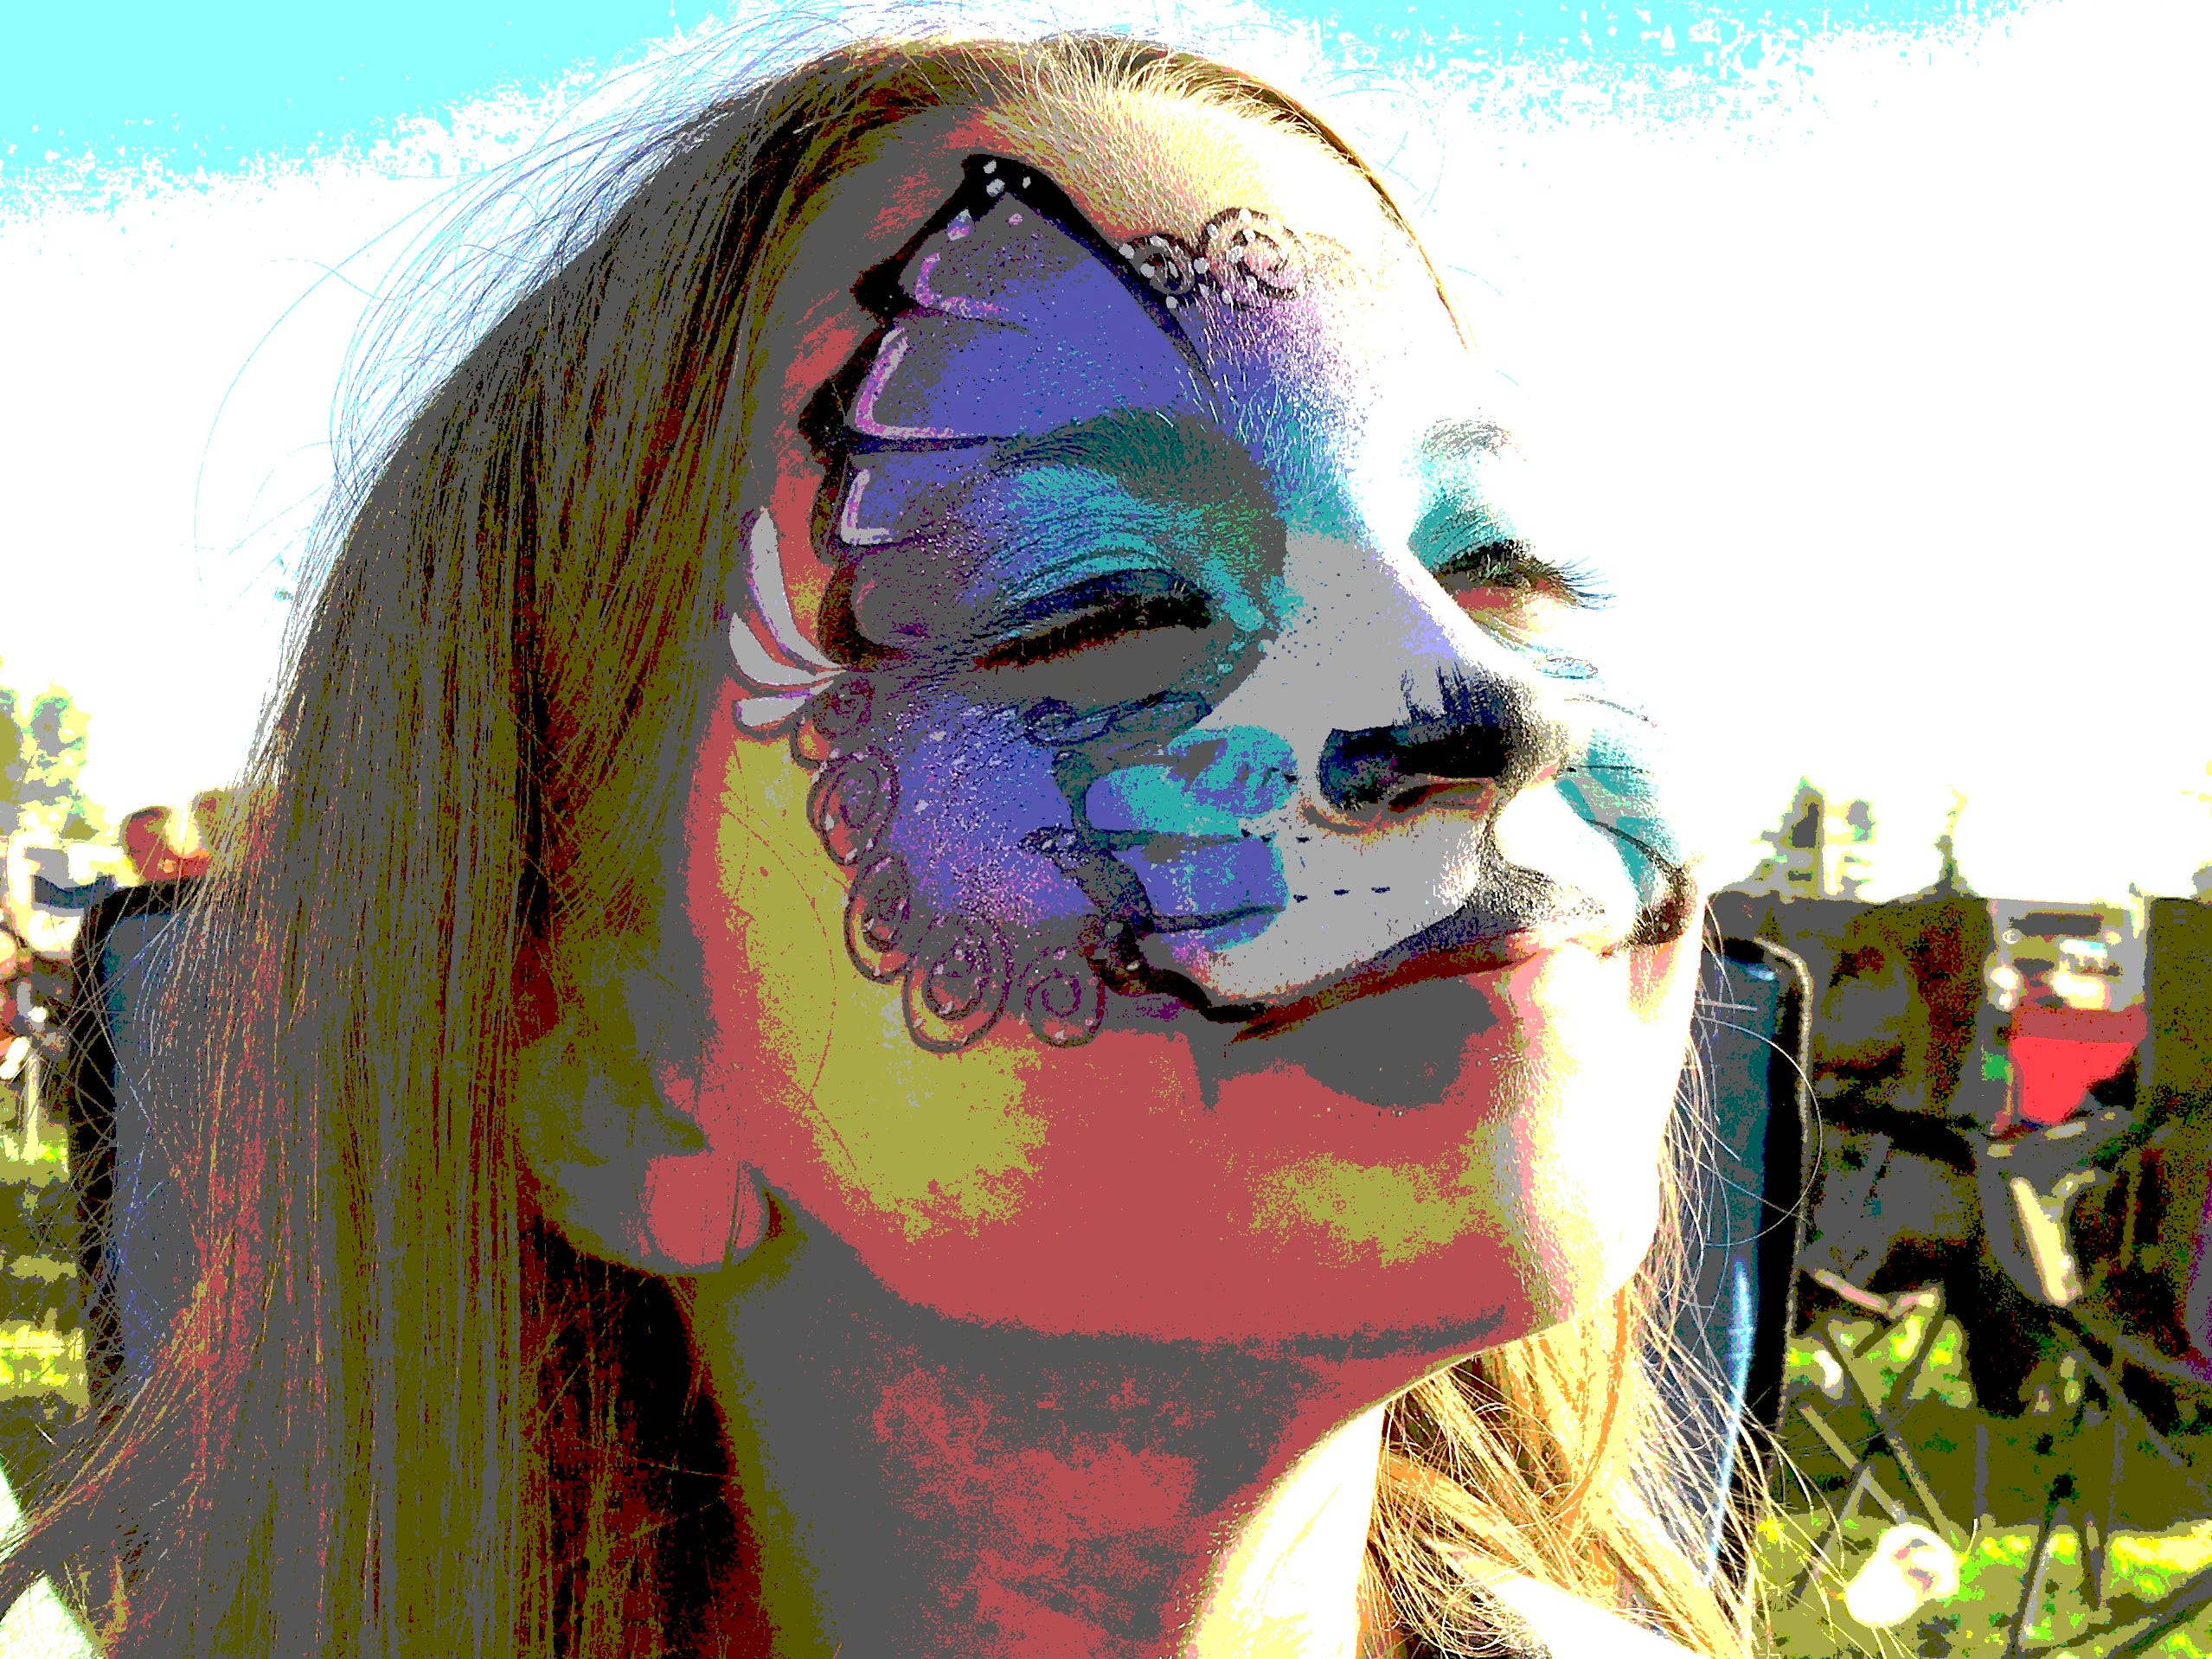 Bailey Lowdermilk, 9, of Redding wears a Merkitty face at the Redd Sunn Festival on Sunday in this postereized image.